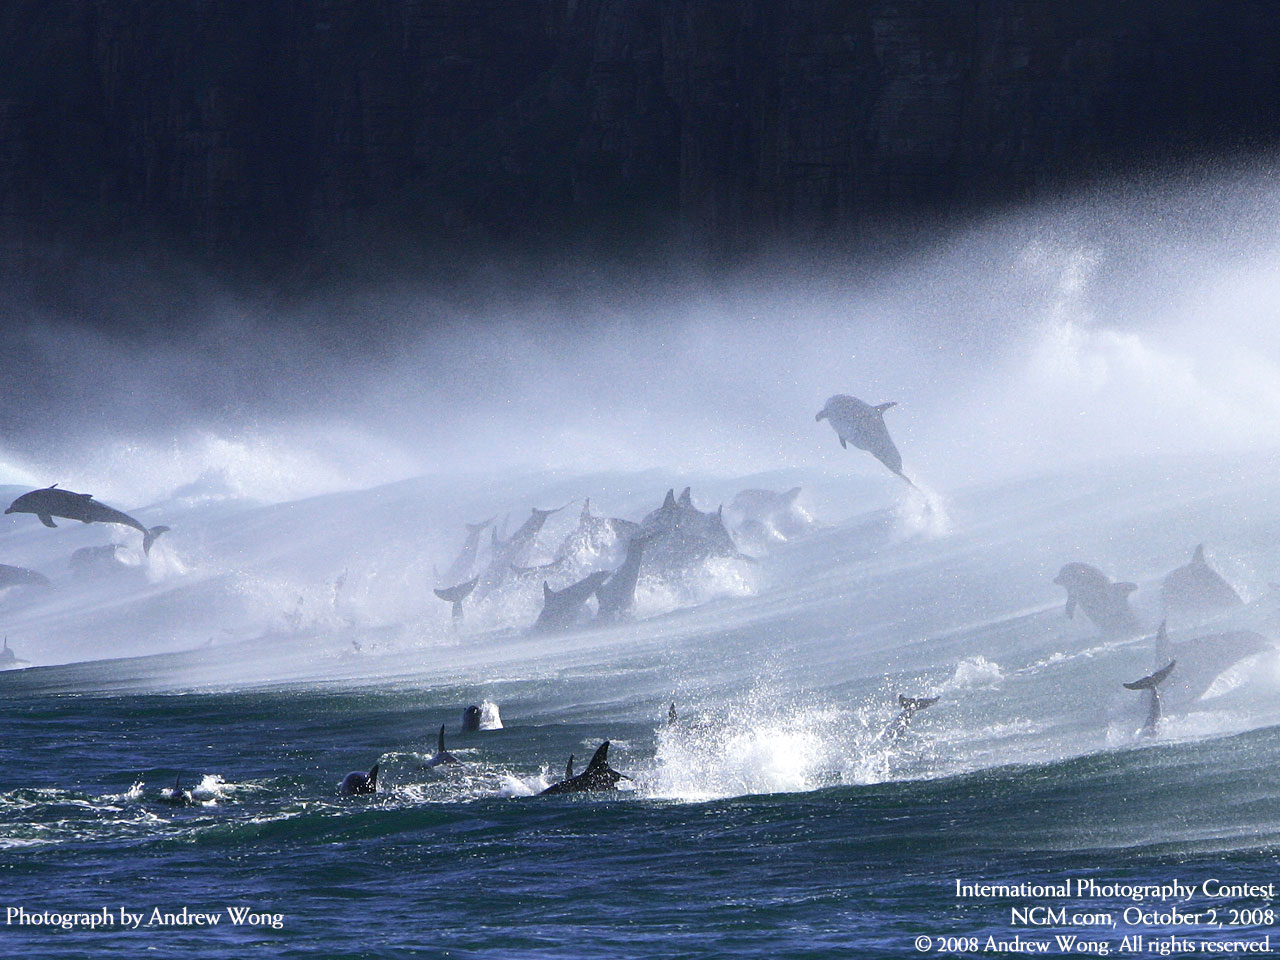 Beautiful Photograph of Dolphins.